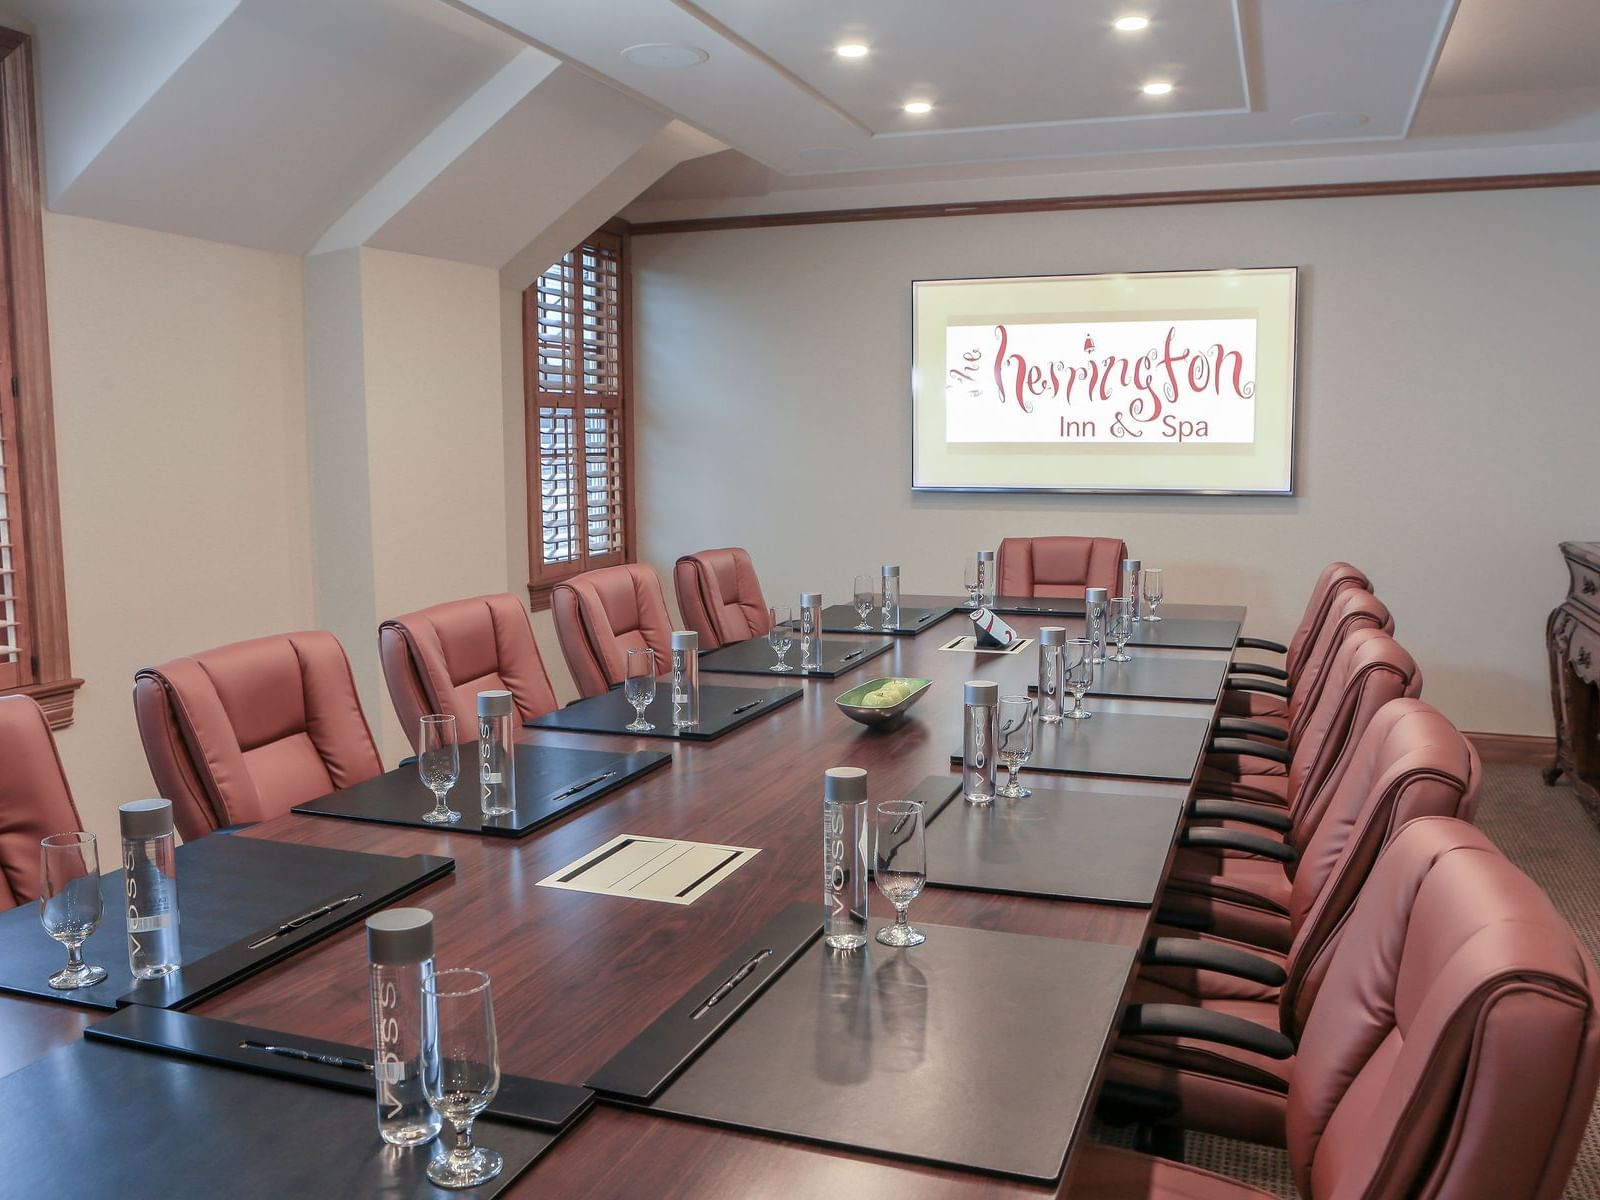 a large meeting desk and chairs